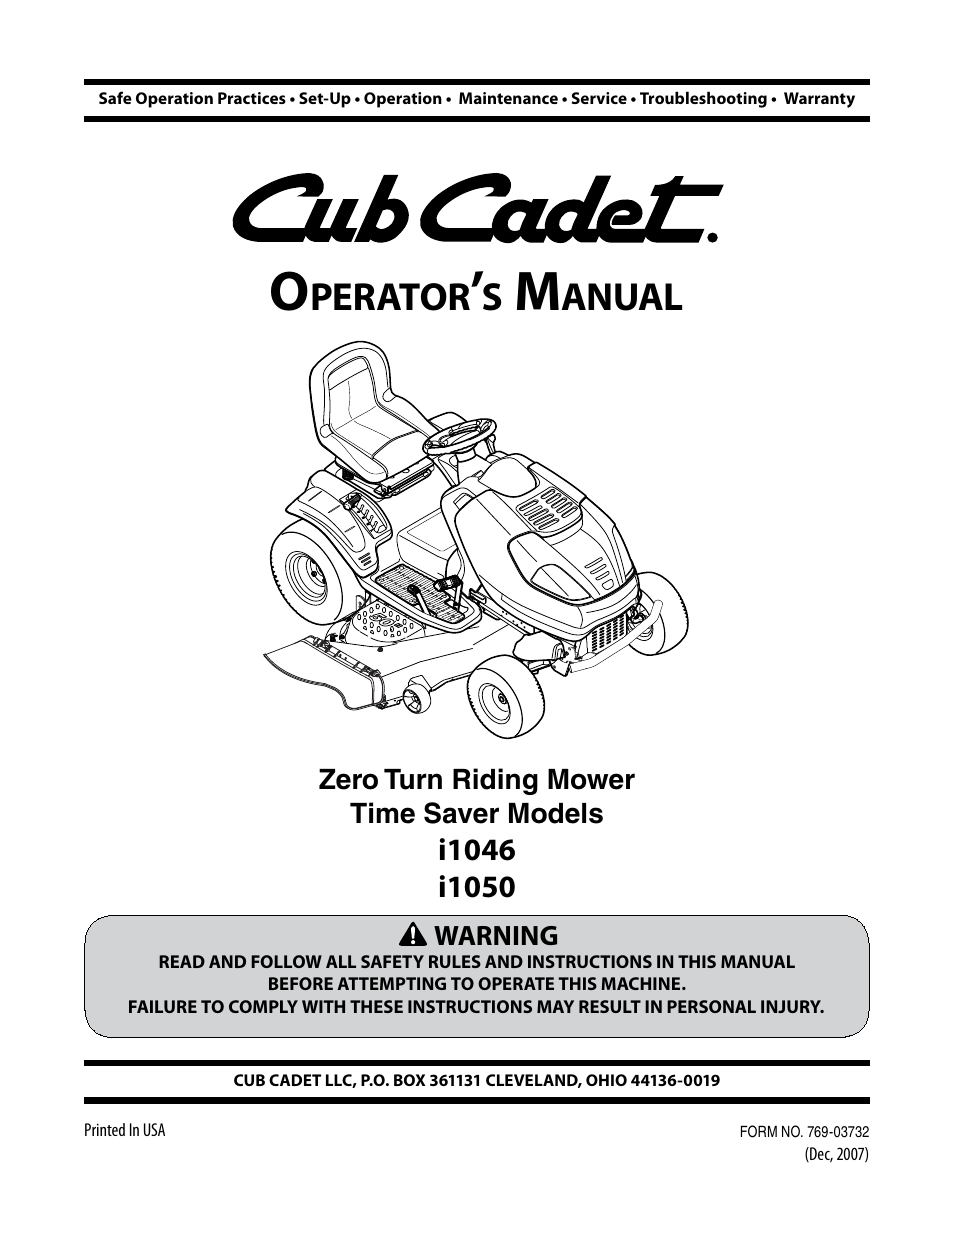 cub cadet i1050 user manual 32 pages also for i1046 rh manualsdir com Cub Cadet I1042 Oil Cub Cadet I1050 Problems